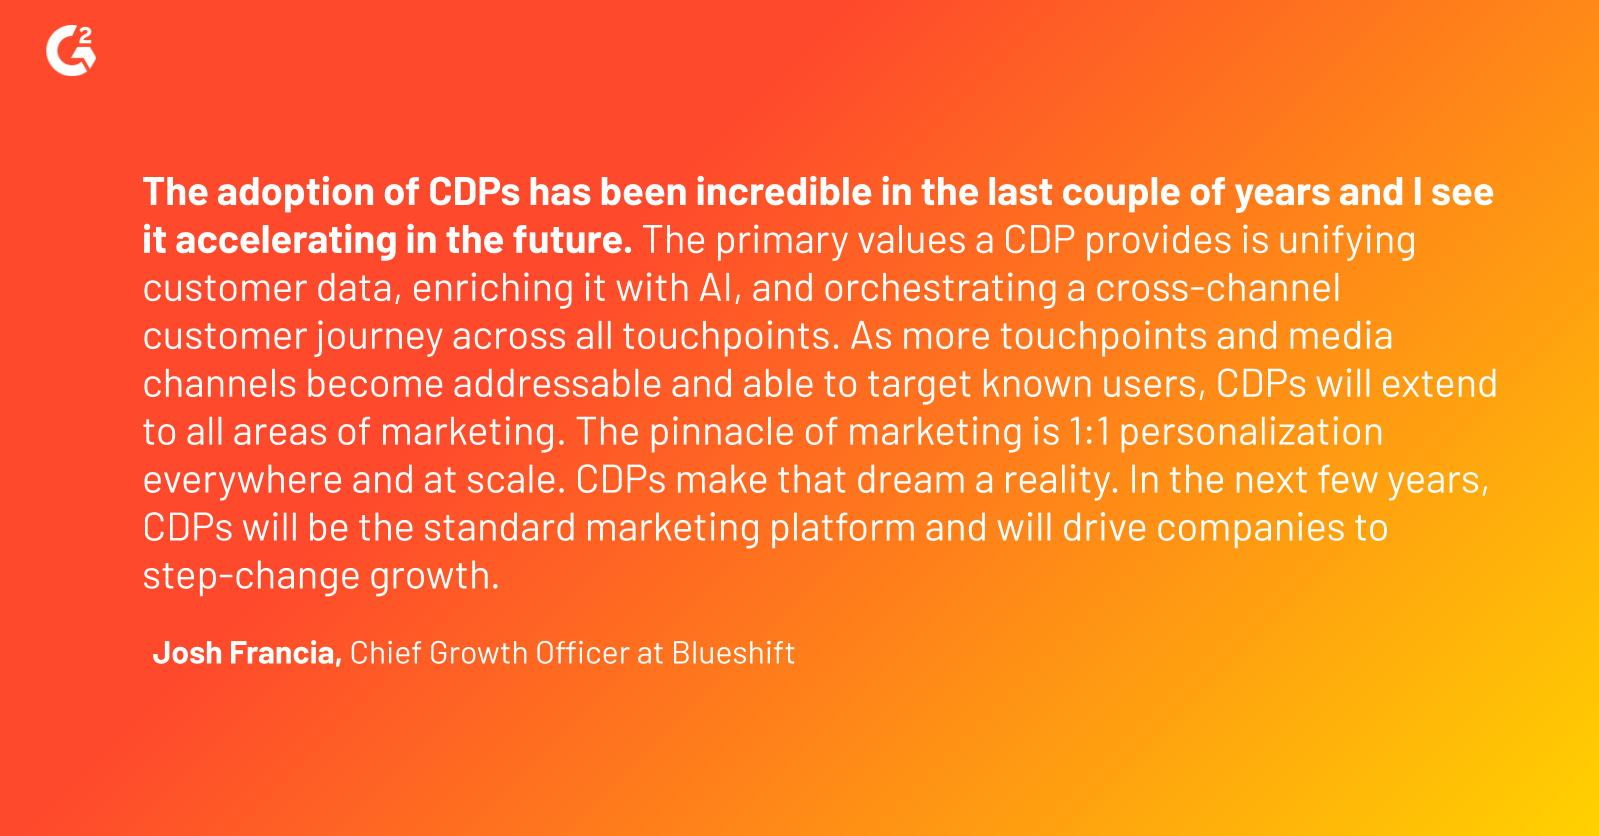 Josh Francia, of Blueshift, on why CDPs have been integral in MarTech with AI in the last few years.